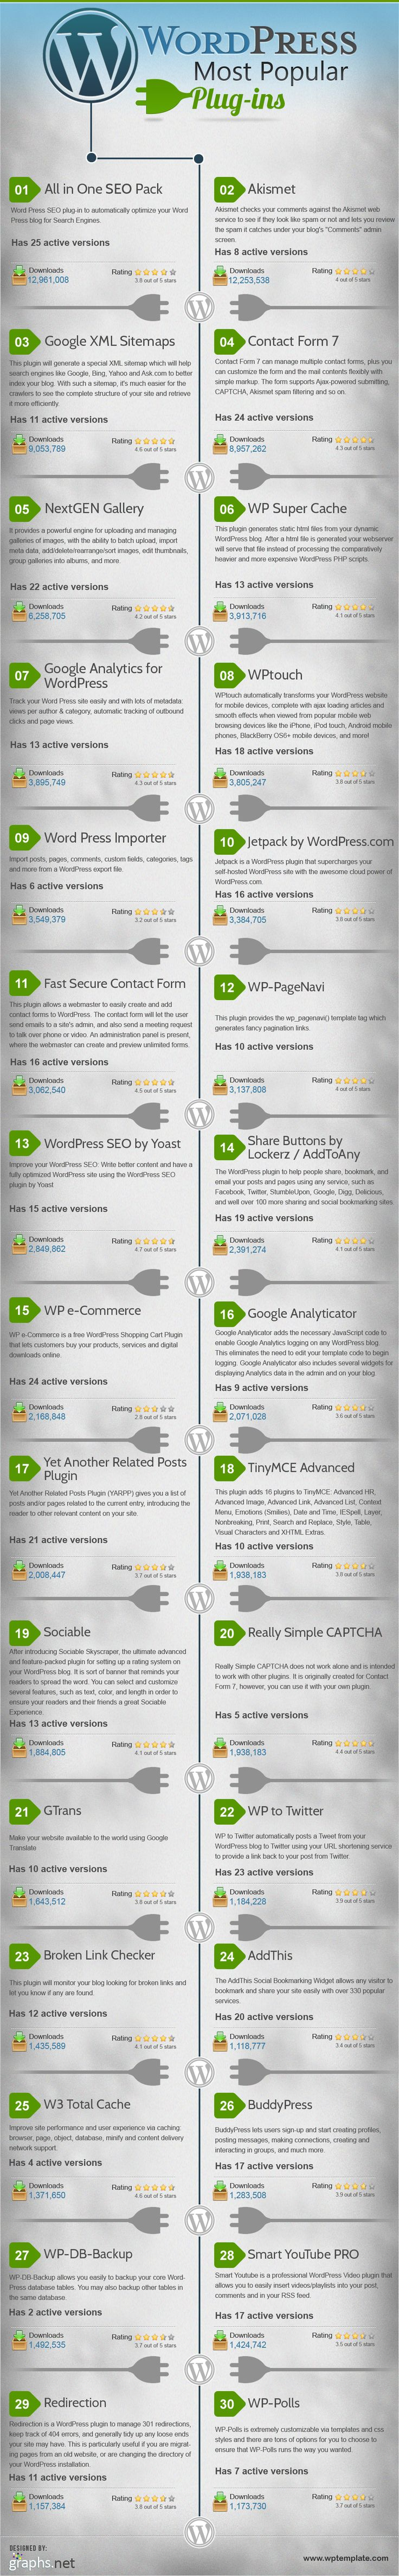 [INFOGRAPHIC] WordPress Most Popular Plugins  Small business can use WordPress for great success online. Even small eCommerce sites are possible. Plugins make WordPress amazingly flexible and easy-to-use. An investment in a WordPress site with some training to do updates yourself and you increase your revenue using website traffic and control costs by updating the website yourself. Need help getting your WordPress site started? http://www.seobuzzinternetmarketing.com/web-design-services/